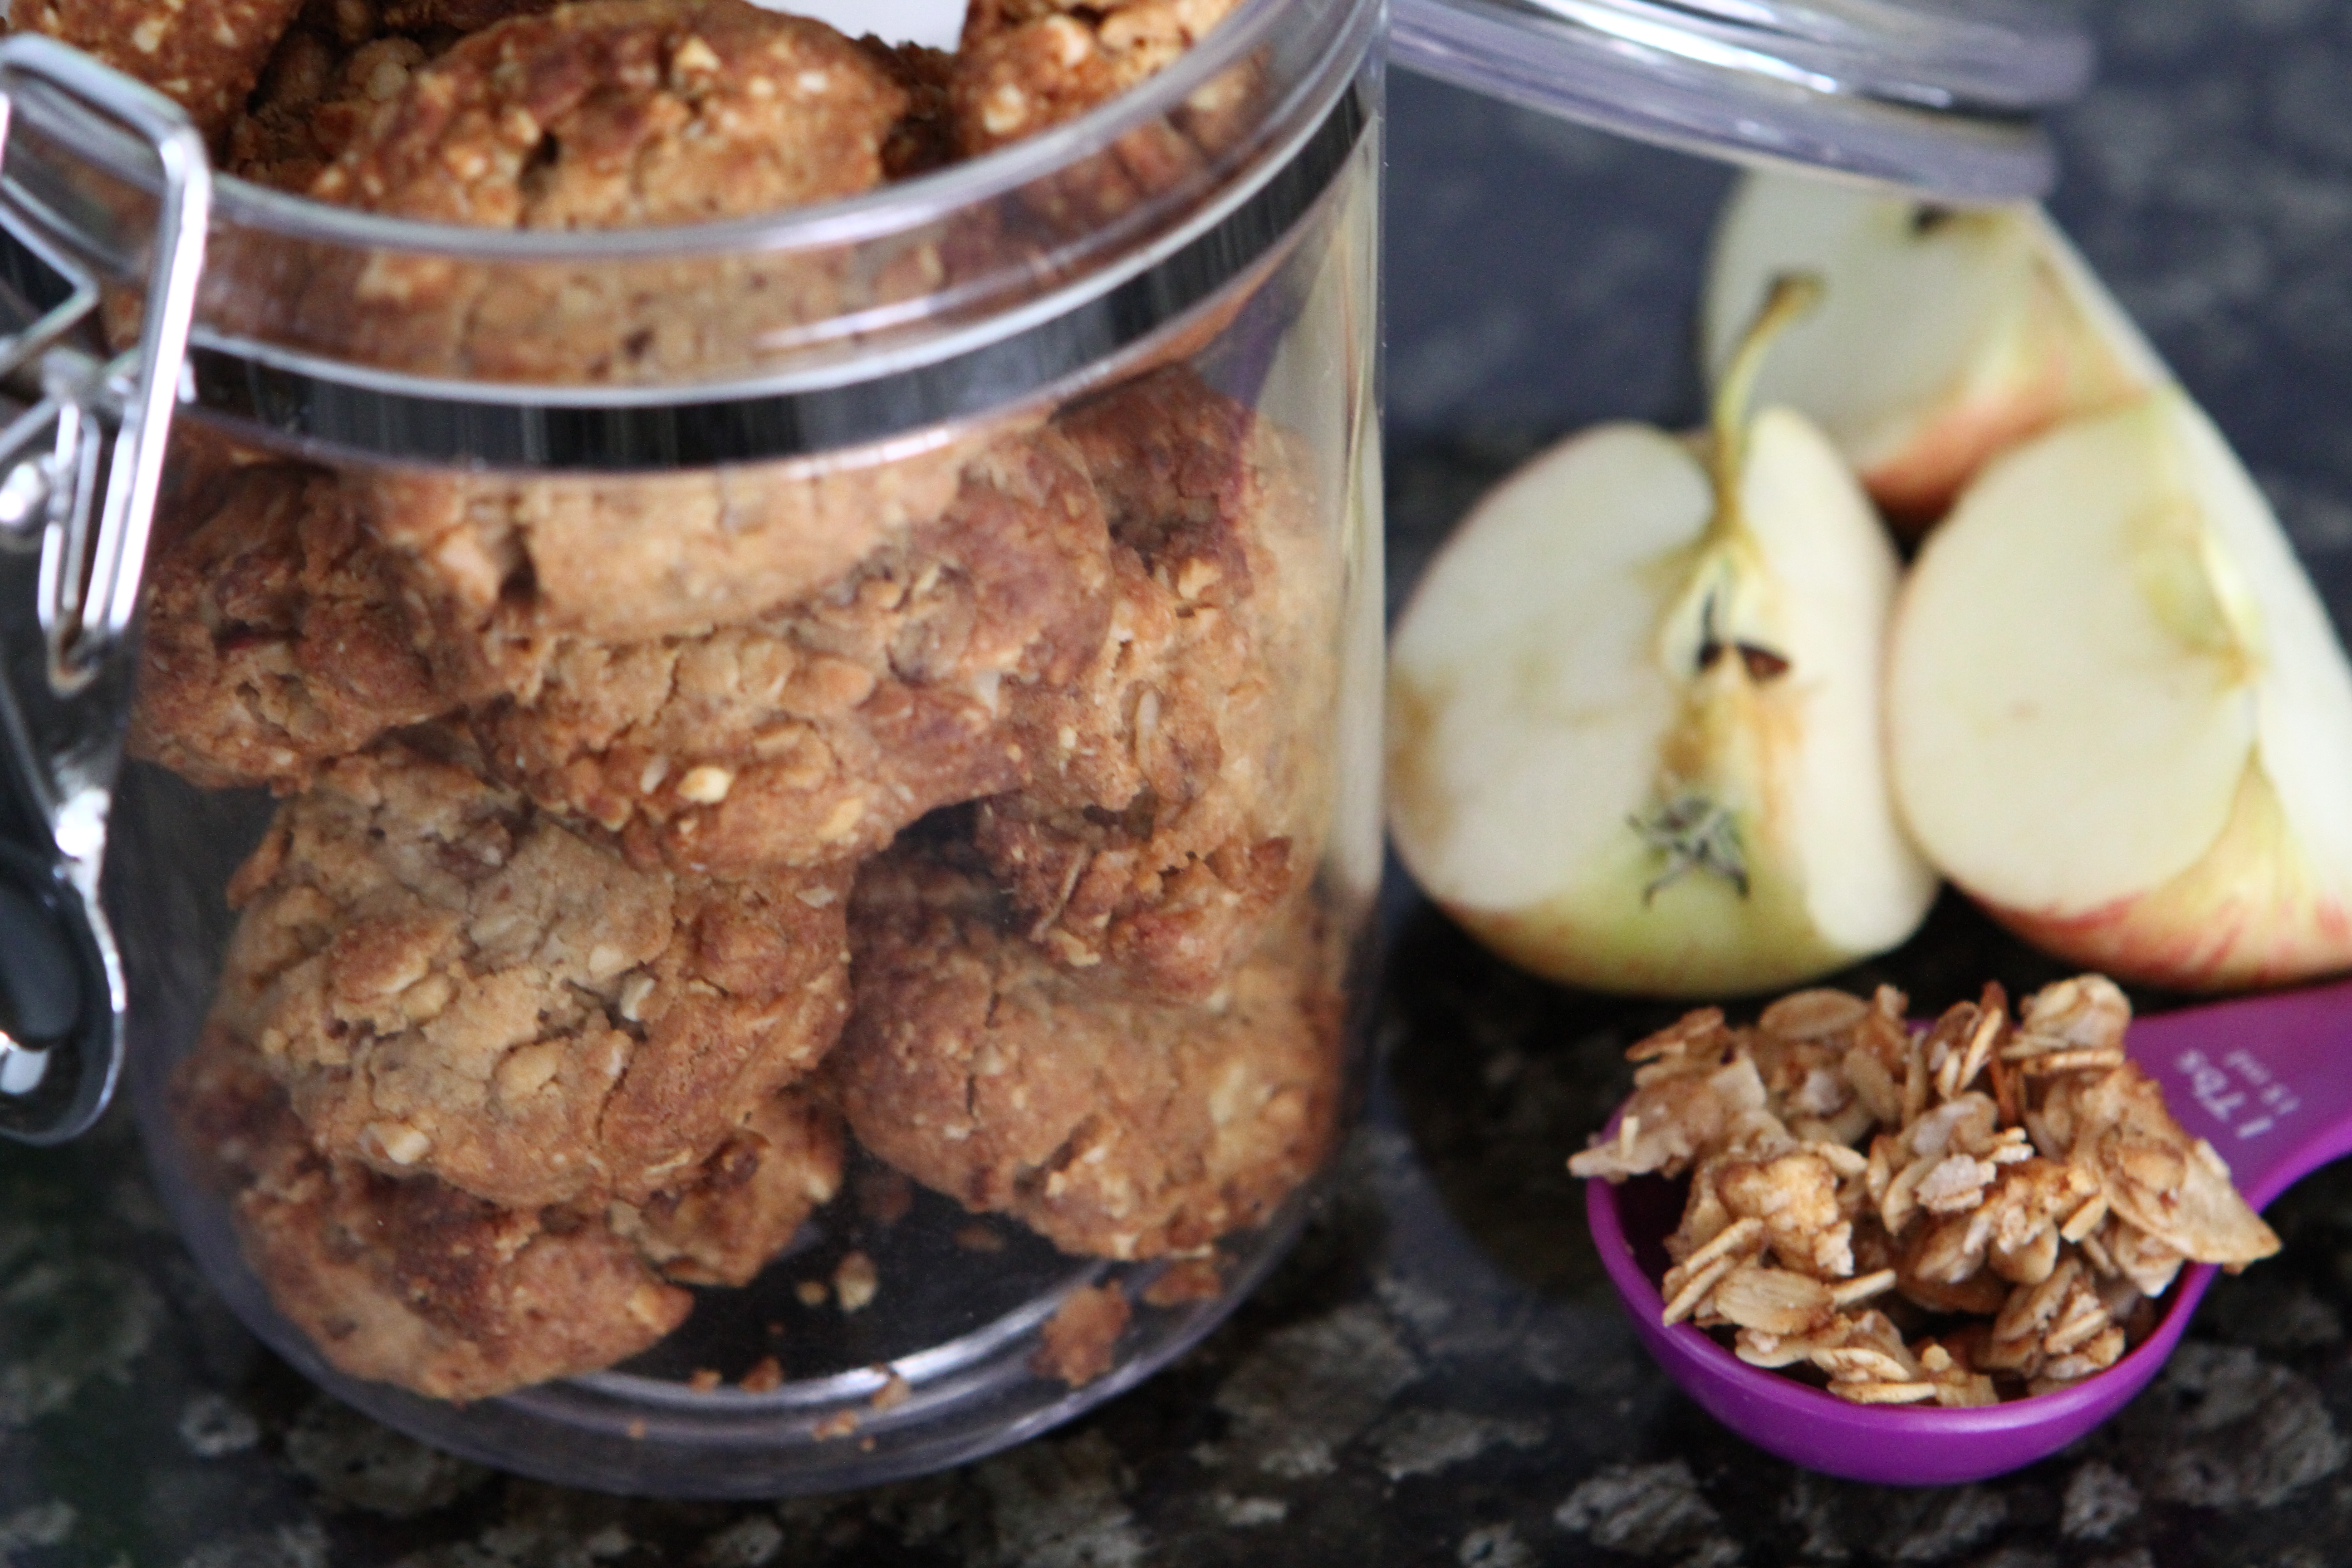 Sugar Free Peanut Butter & Apple Granola Cookies